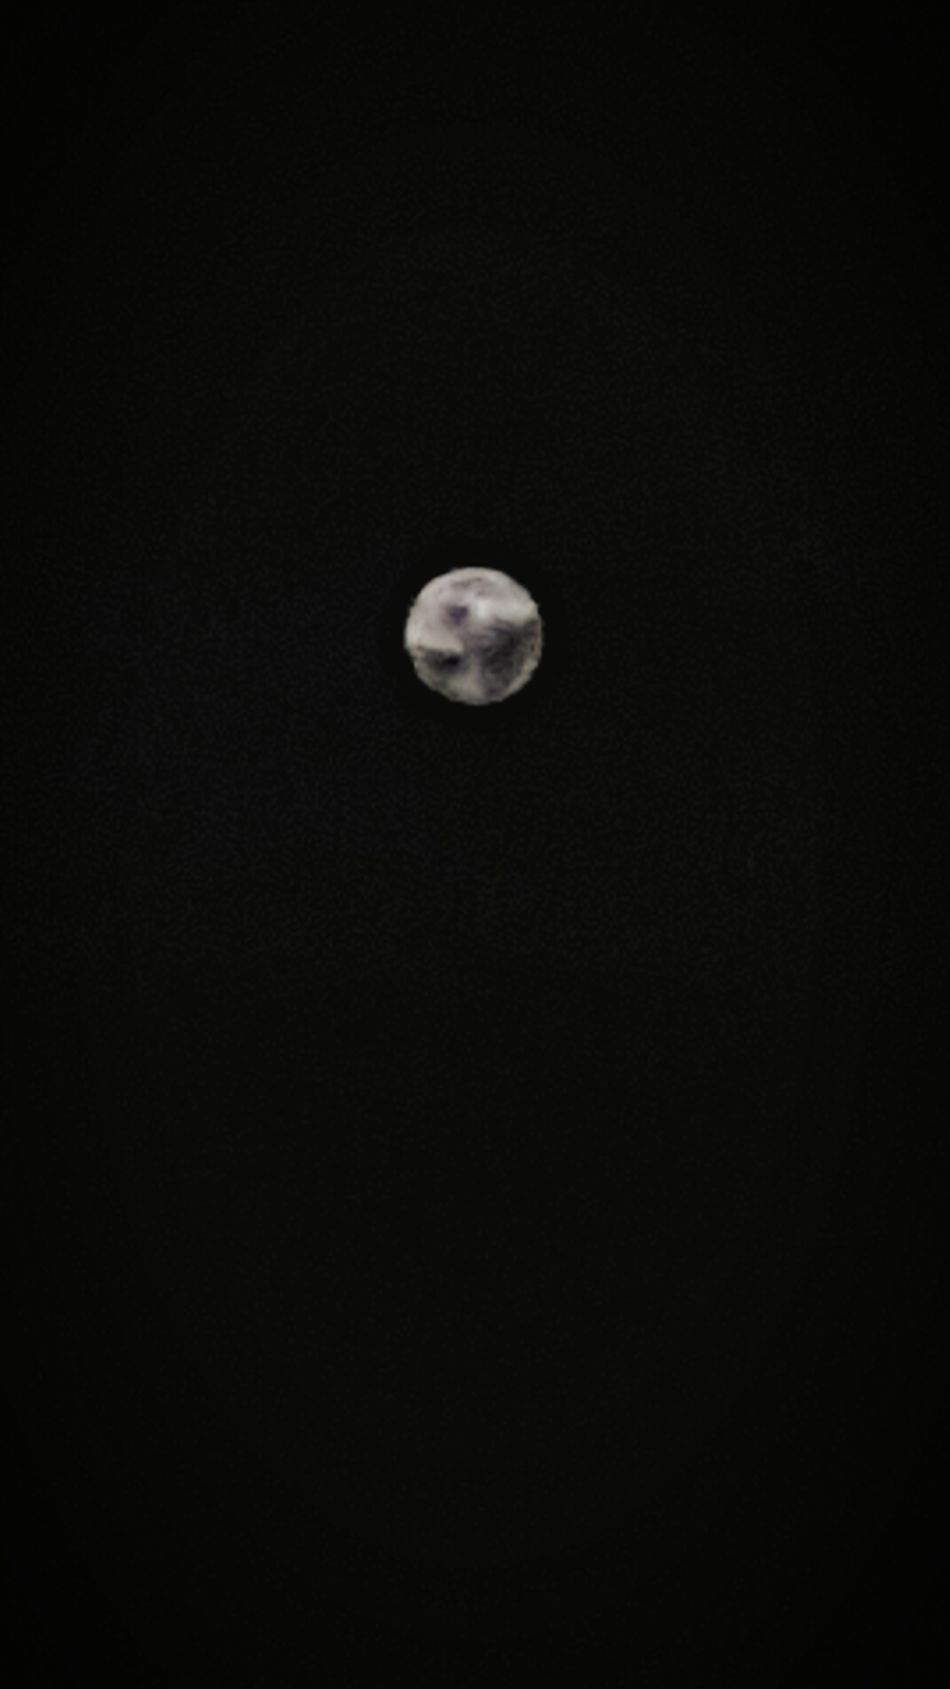 Moon Beauty In Nature Nature Astronomy Night Scenics Dark Sky Space Planetary Moon Half Moon Tranquil Scene Space Exploration No People Black Background Moon Surface Emeyebestshot Eyeemphotography Special Moment Fun Queen👑 Hidden Places AtPeace Fresh On Eyeem  Relaxation